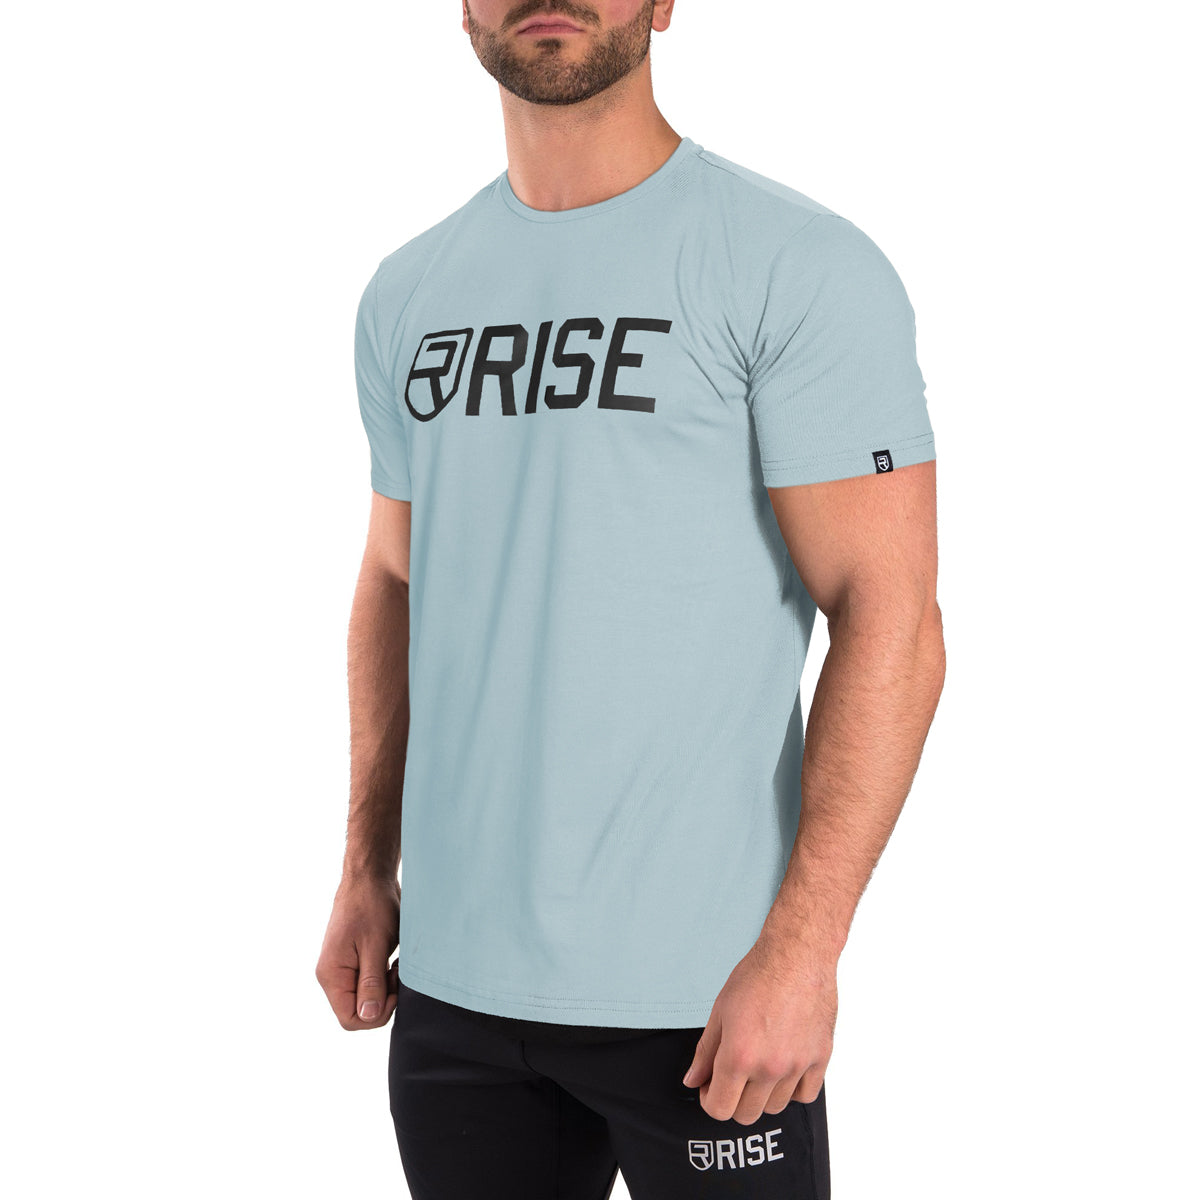 Signature Shirt - Slate Blue